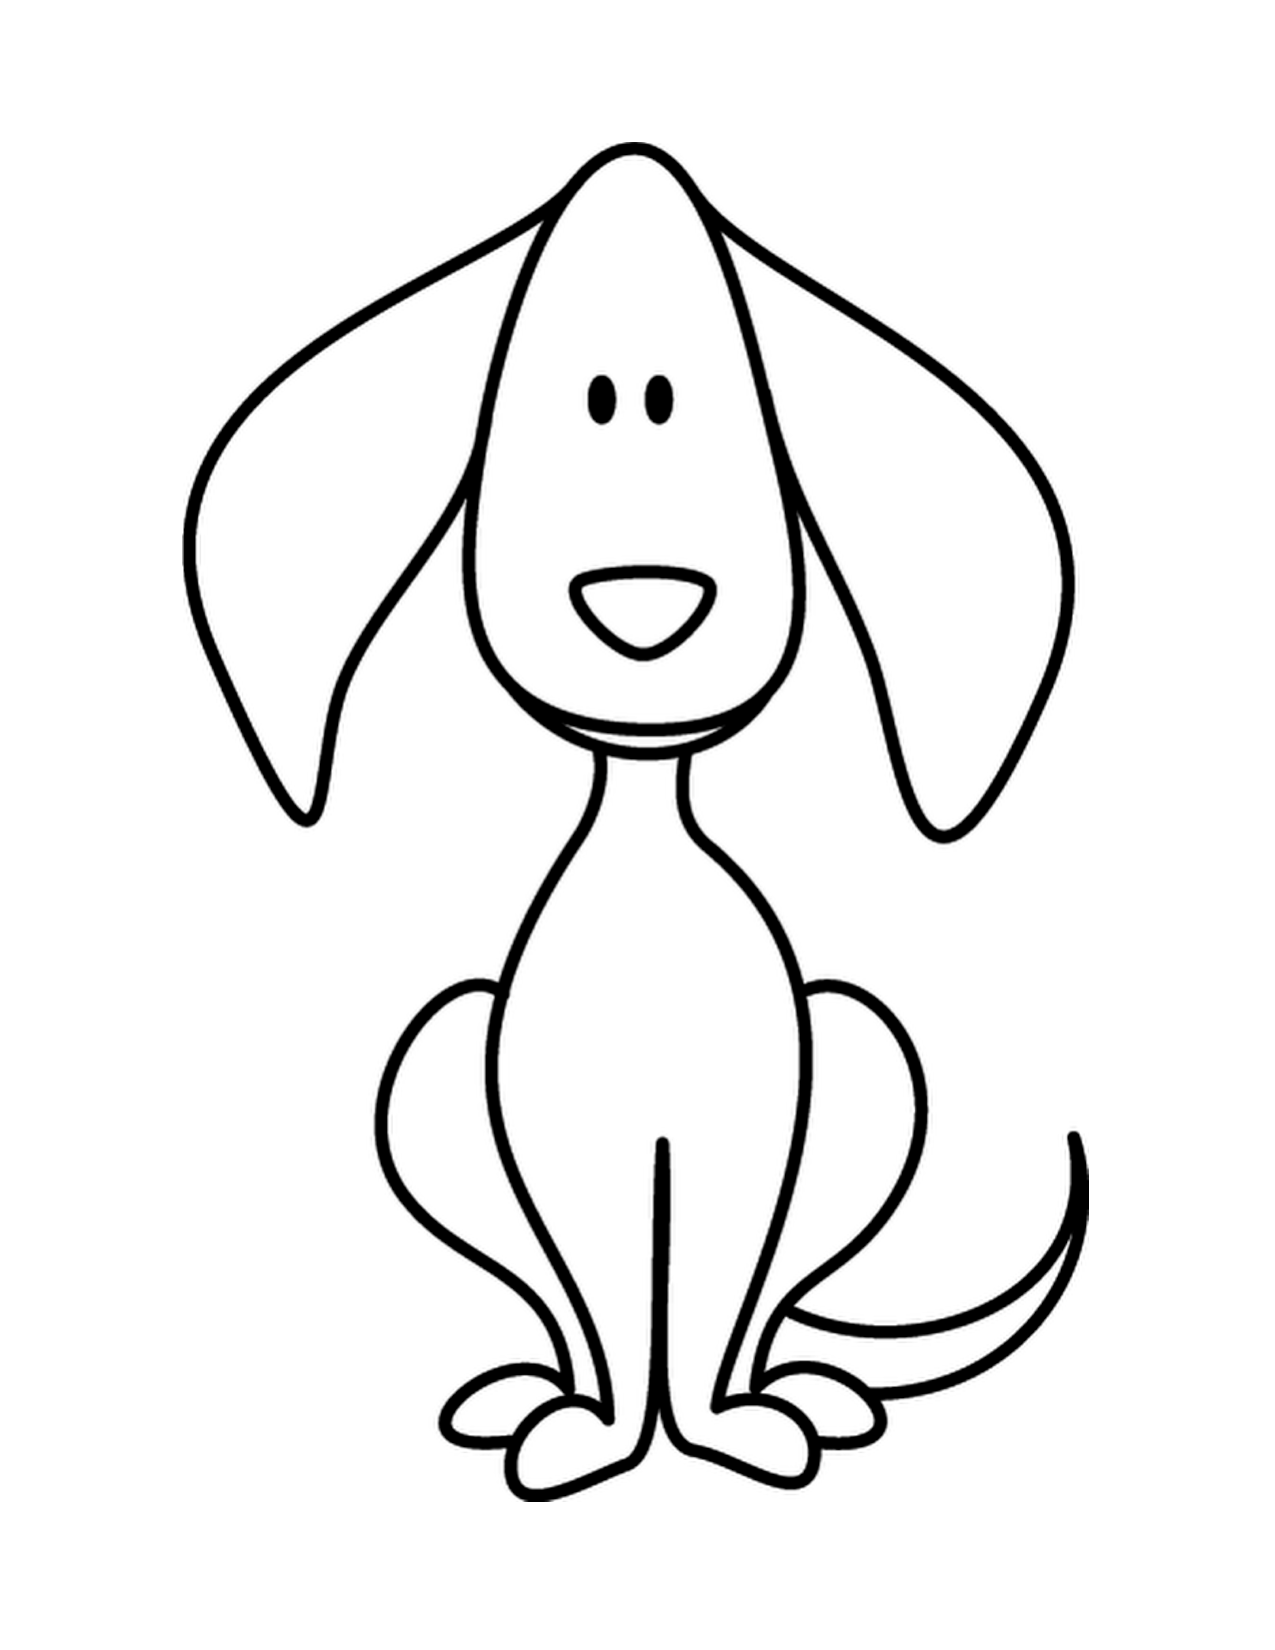 1275x1650 Easy To Draw Dog Clipart